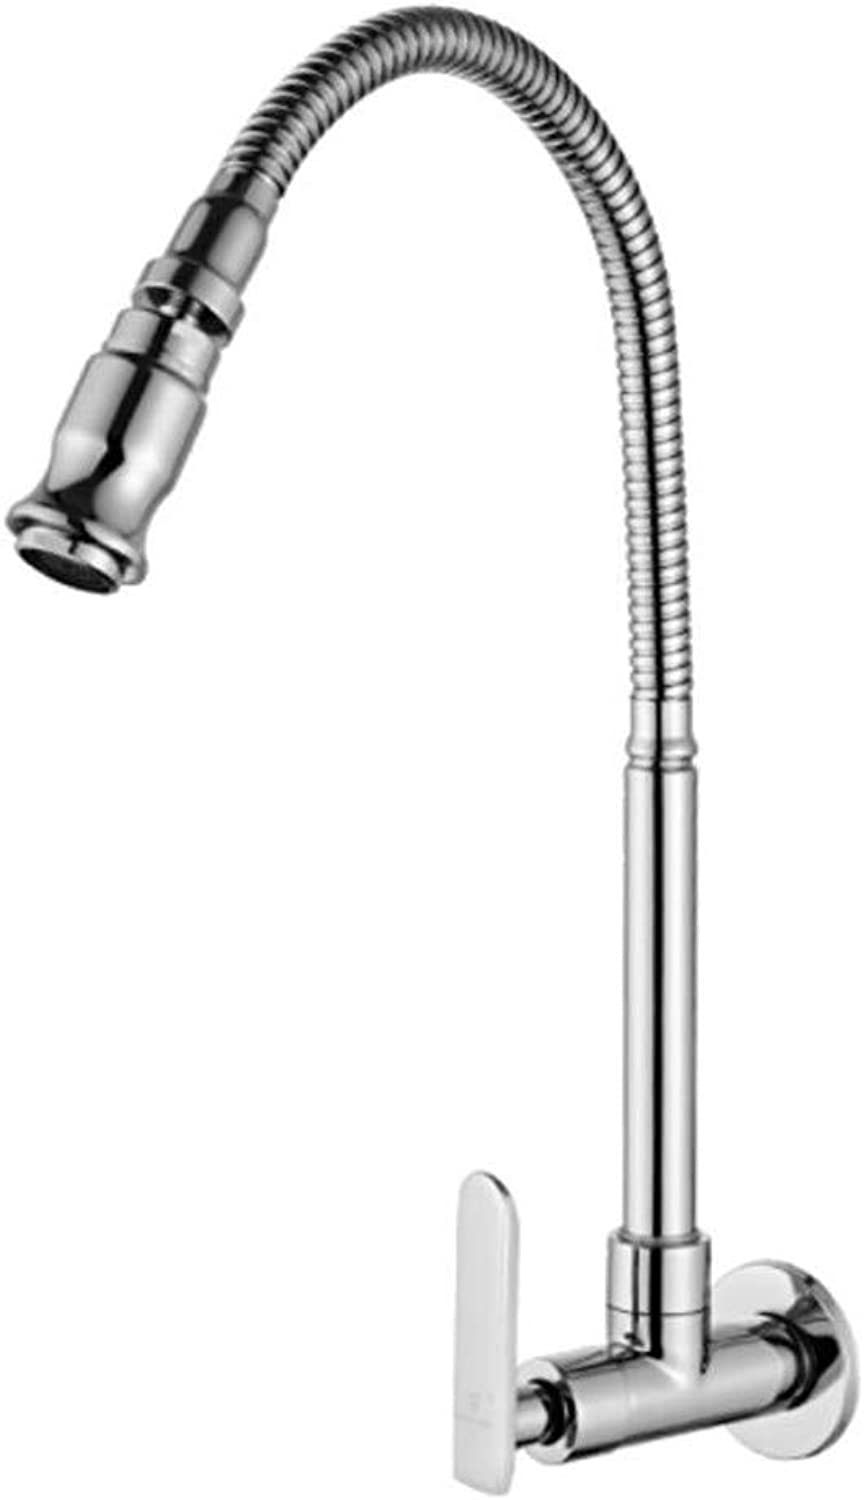 Taps Mixer?Swivel?Faucet Sink Balcony of Mop Pool, Washing Pool, Balcony, Single-Cooled Kitchen, Sink, Vegetable Basin, Faucet, Universal Pipe Into Wall Faucet